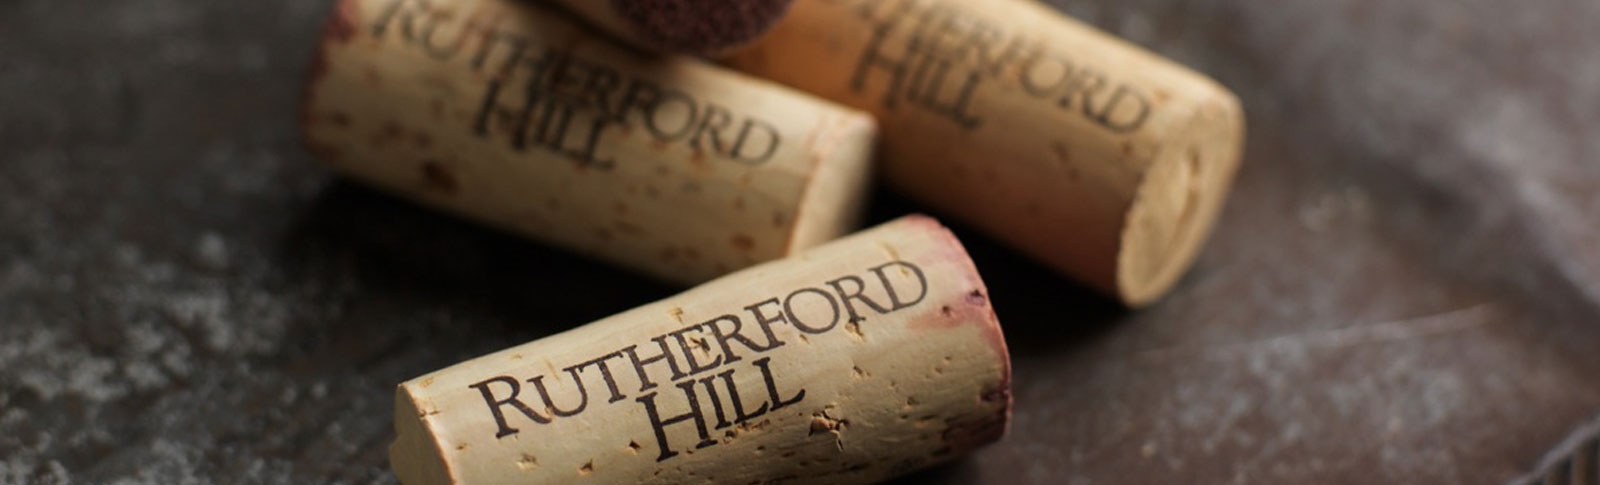 About Rutherford Hill and the Terlato Family